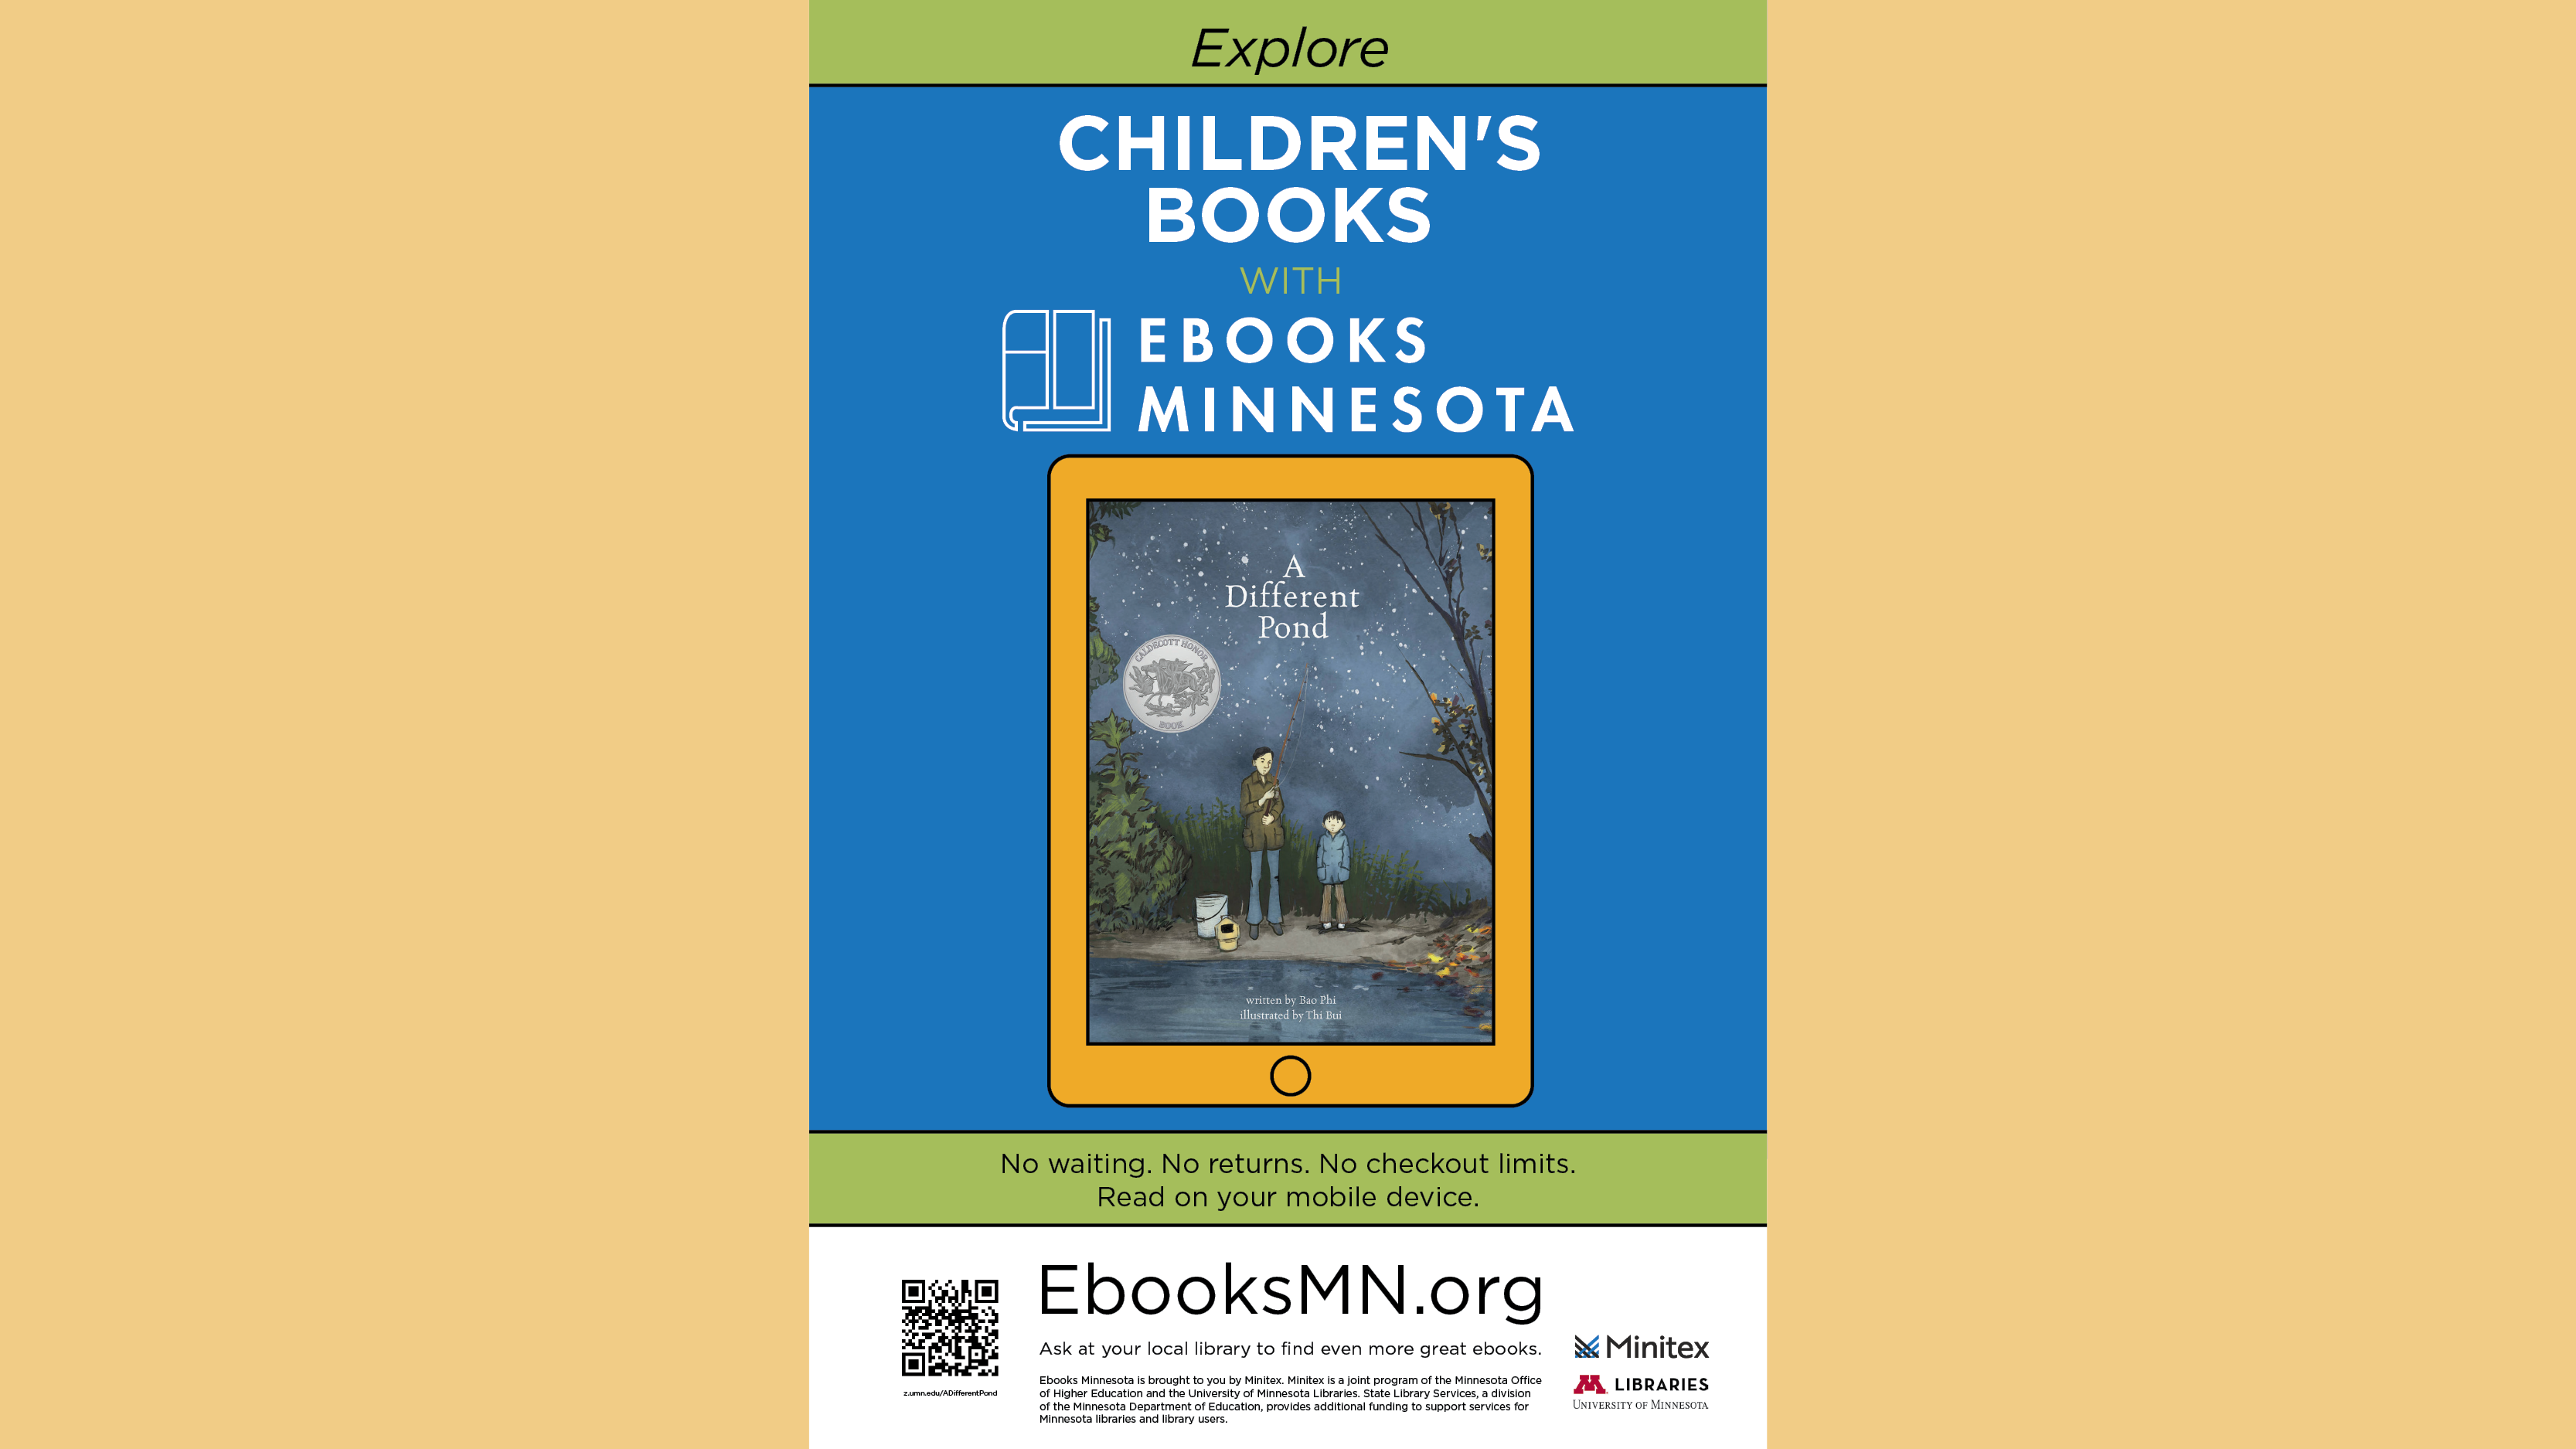 Ebooks Minnesota Poster - Children's Books